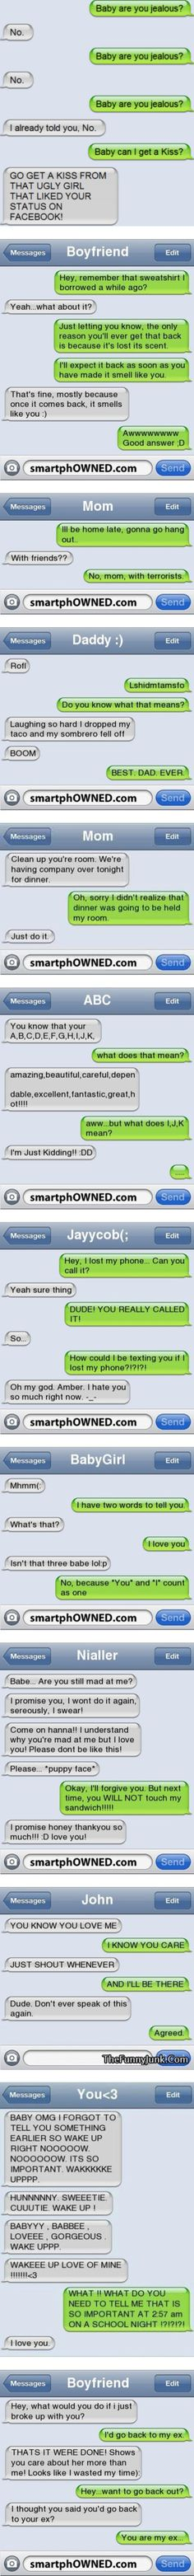 Check out to get some laughs from jokes sms, and funny texts messages. Funny text messages between couples, parents and kids Funny Posts, Funny Shit, Funny Humor, Funny Stuff, Humor Texts, Mom Funny, Funny Life, Haha, Lol Text